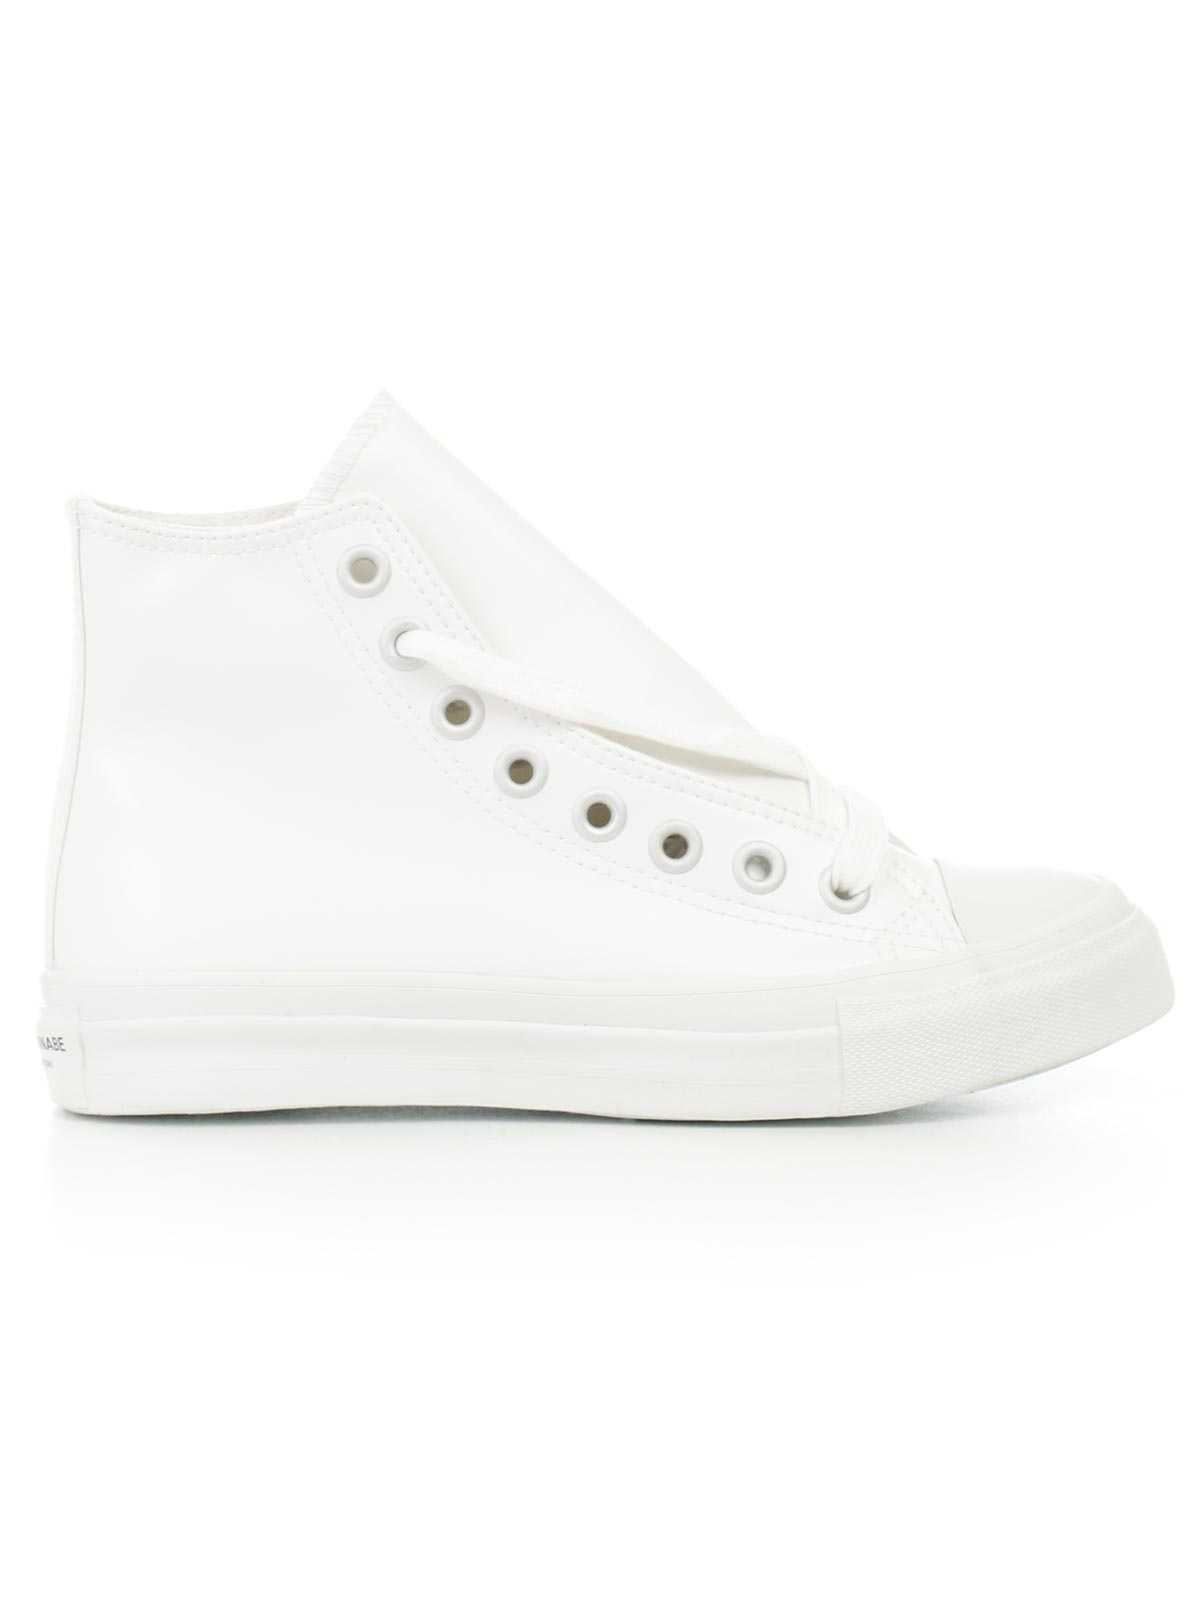 Picture of Junya Watanabe Comme Des Garcons Footwear